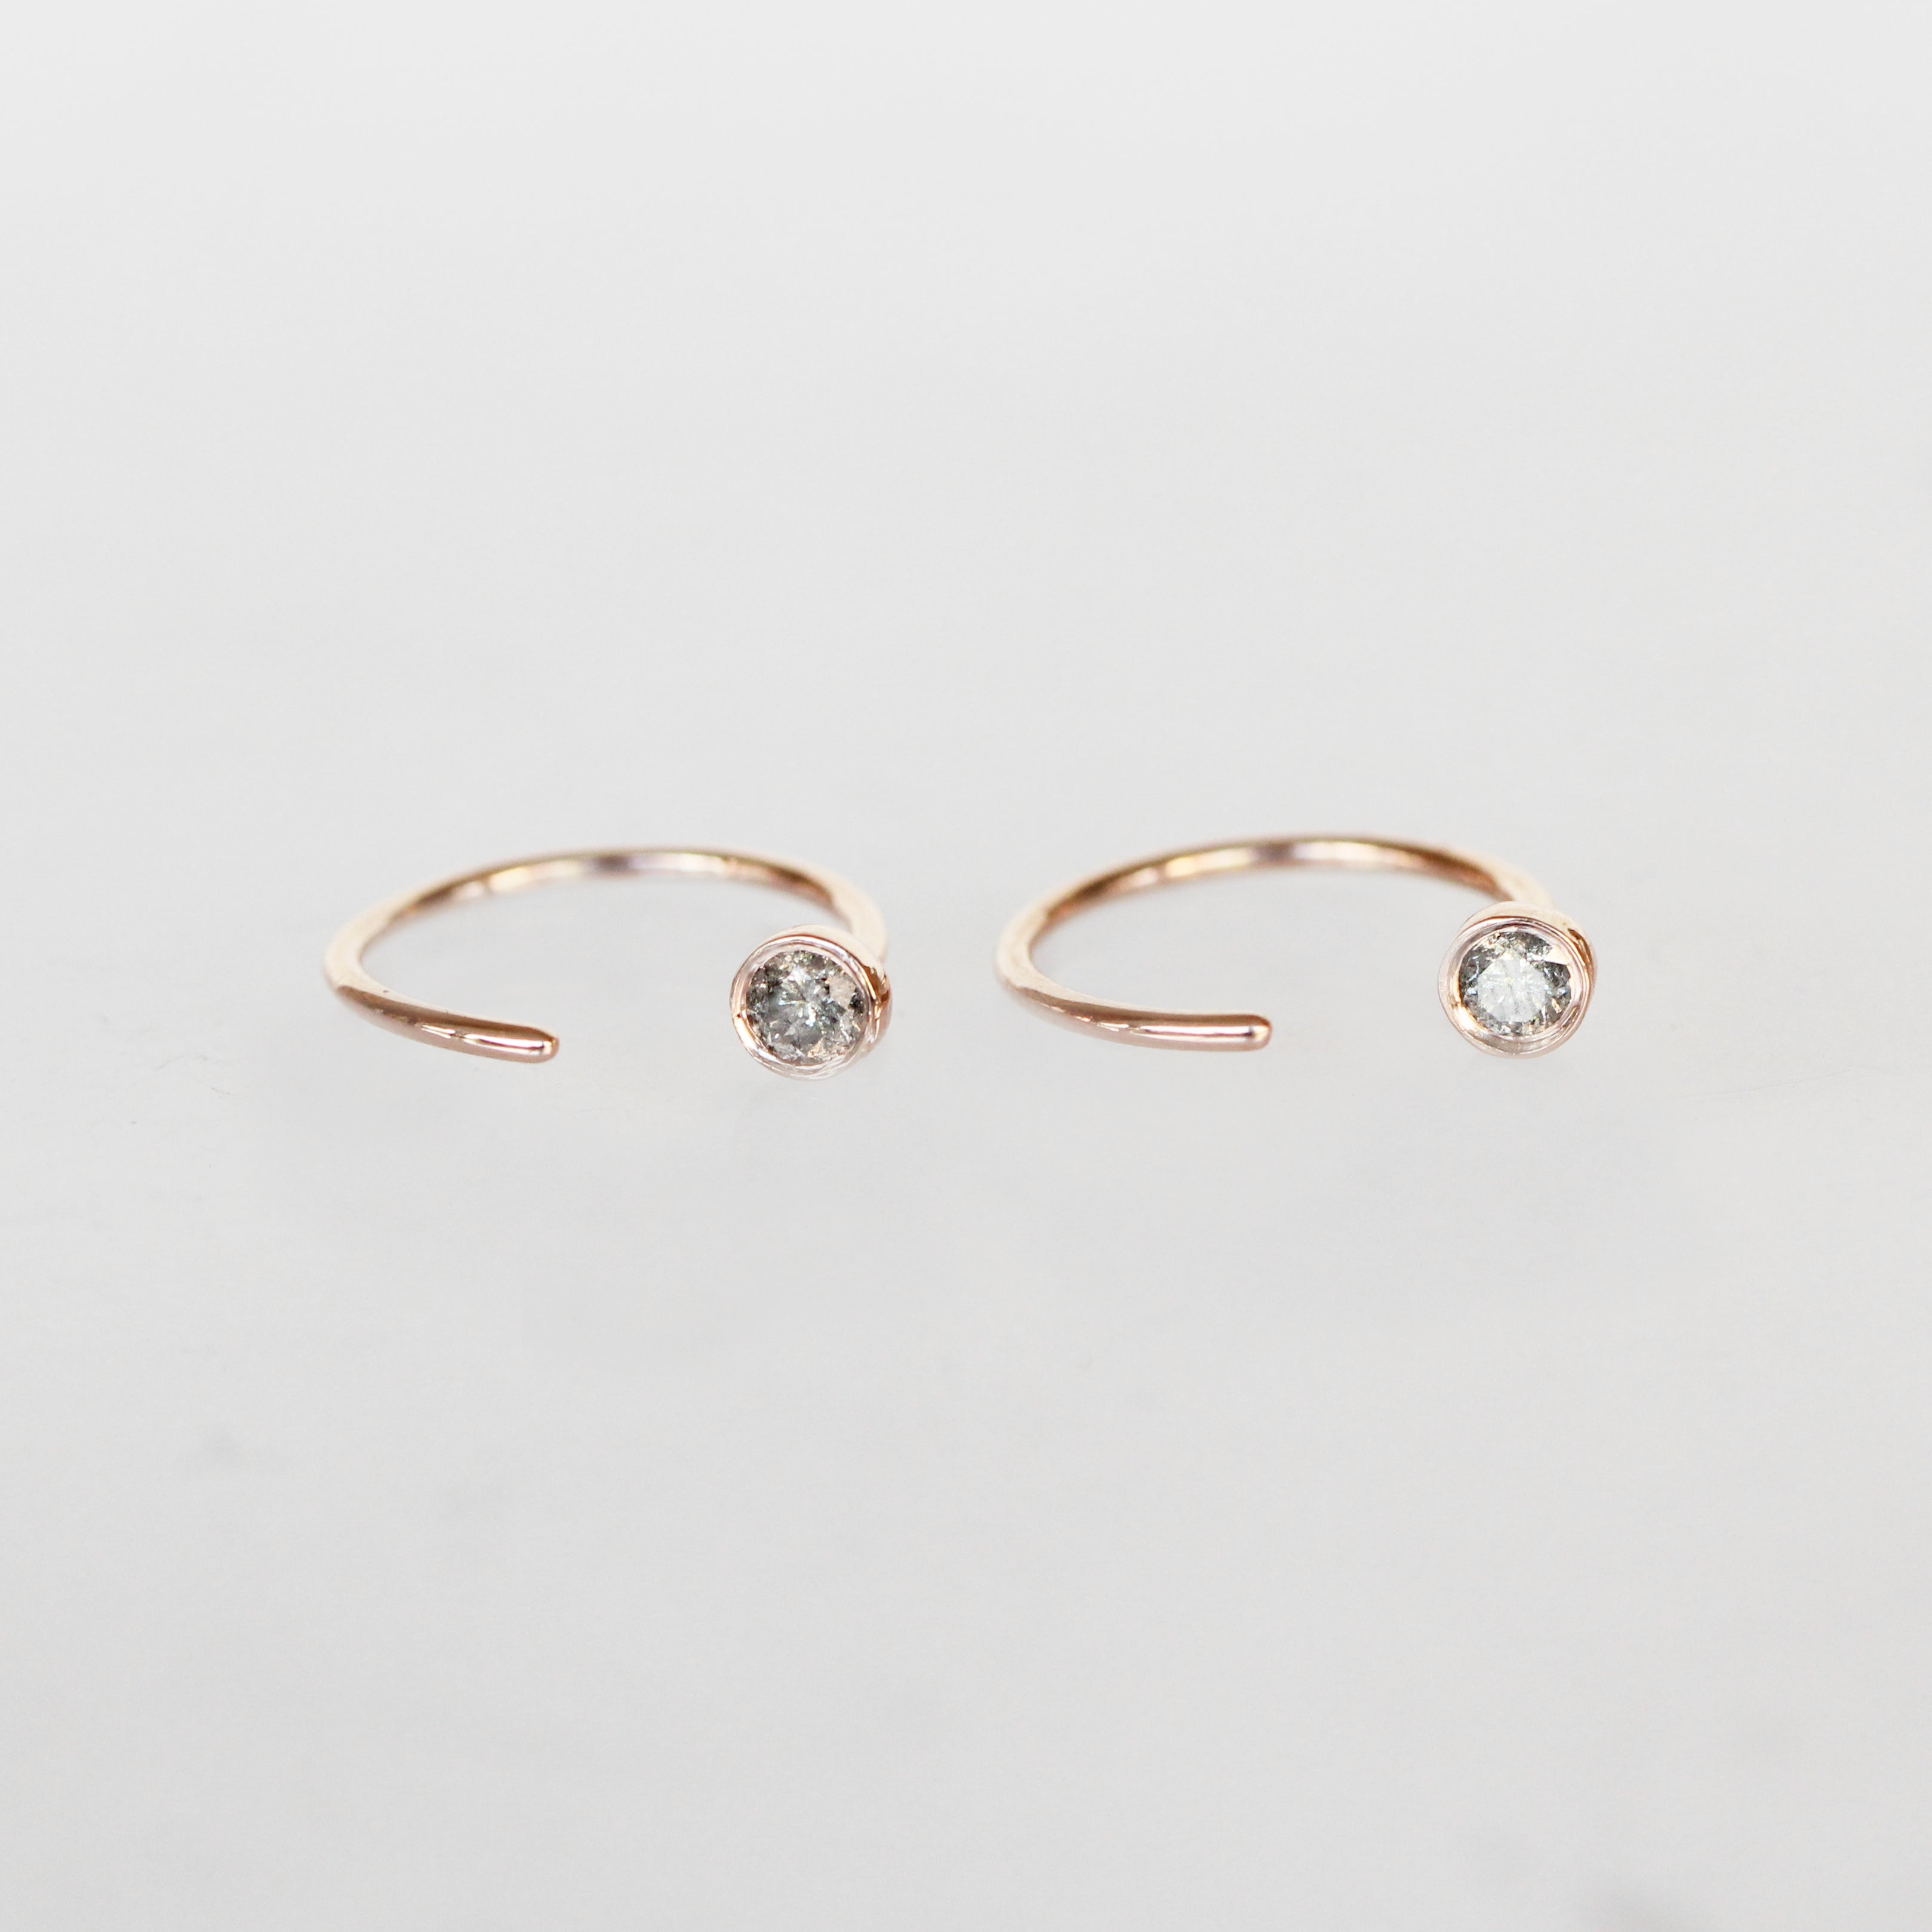 Harper Earrings with Gray Celestial Diamonds ® - Your Choice of 14k Gold - Celestial Diamonds ® by Midwinter Co.